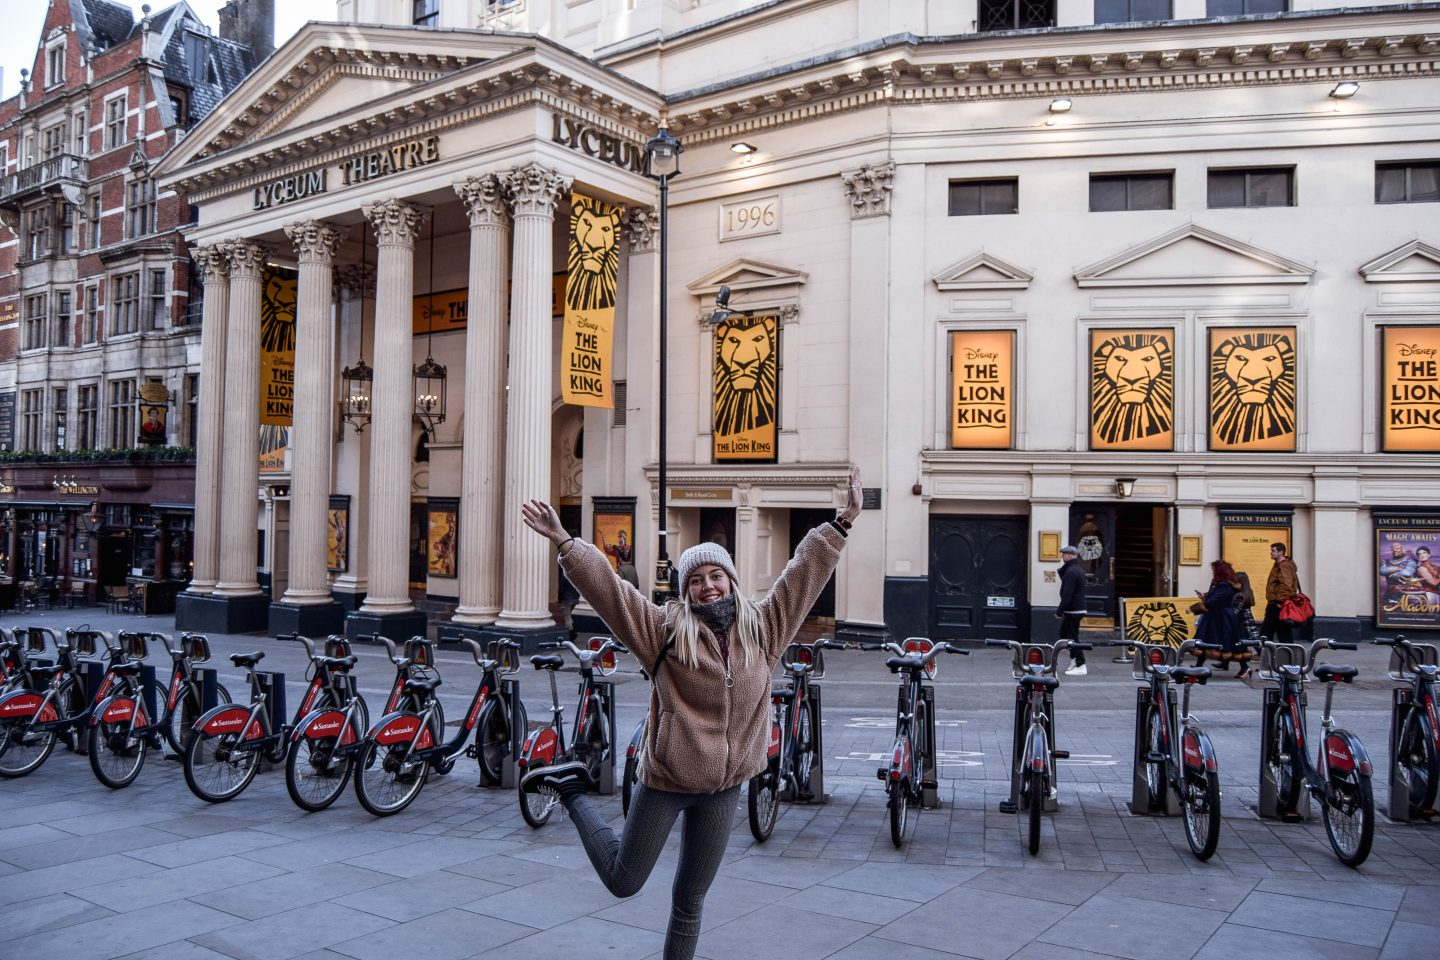 Lyceum Theatre Lion King West End Show 4 Day London Itinerary